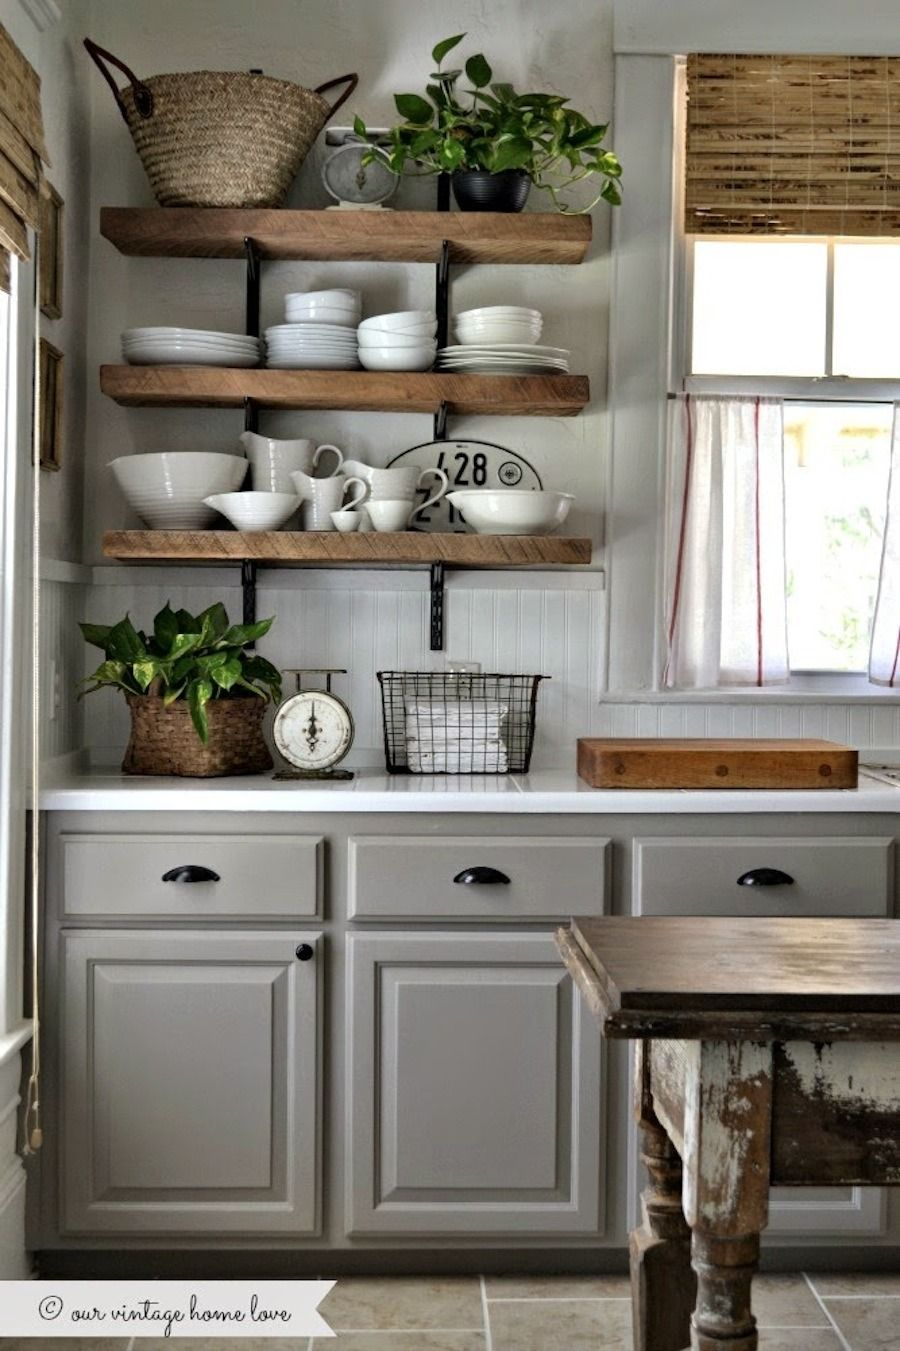 15 Stunning Gray Kitchens And Wood In The Kitchen Bistro Shelves Chipped Island Love Look Of Both Hr